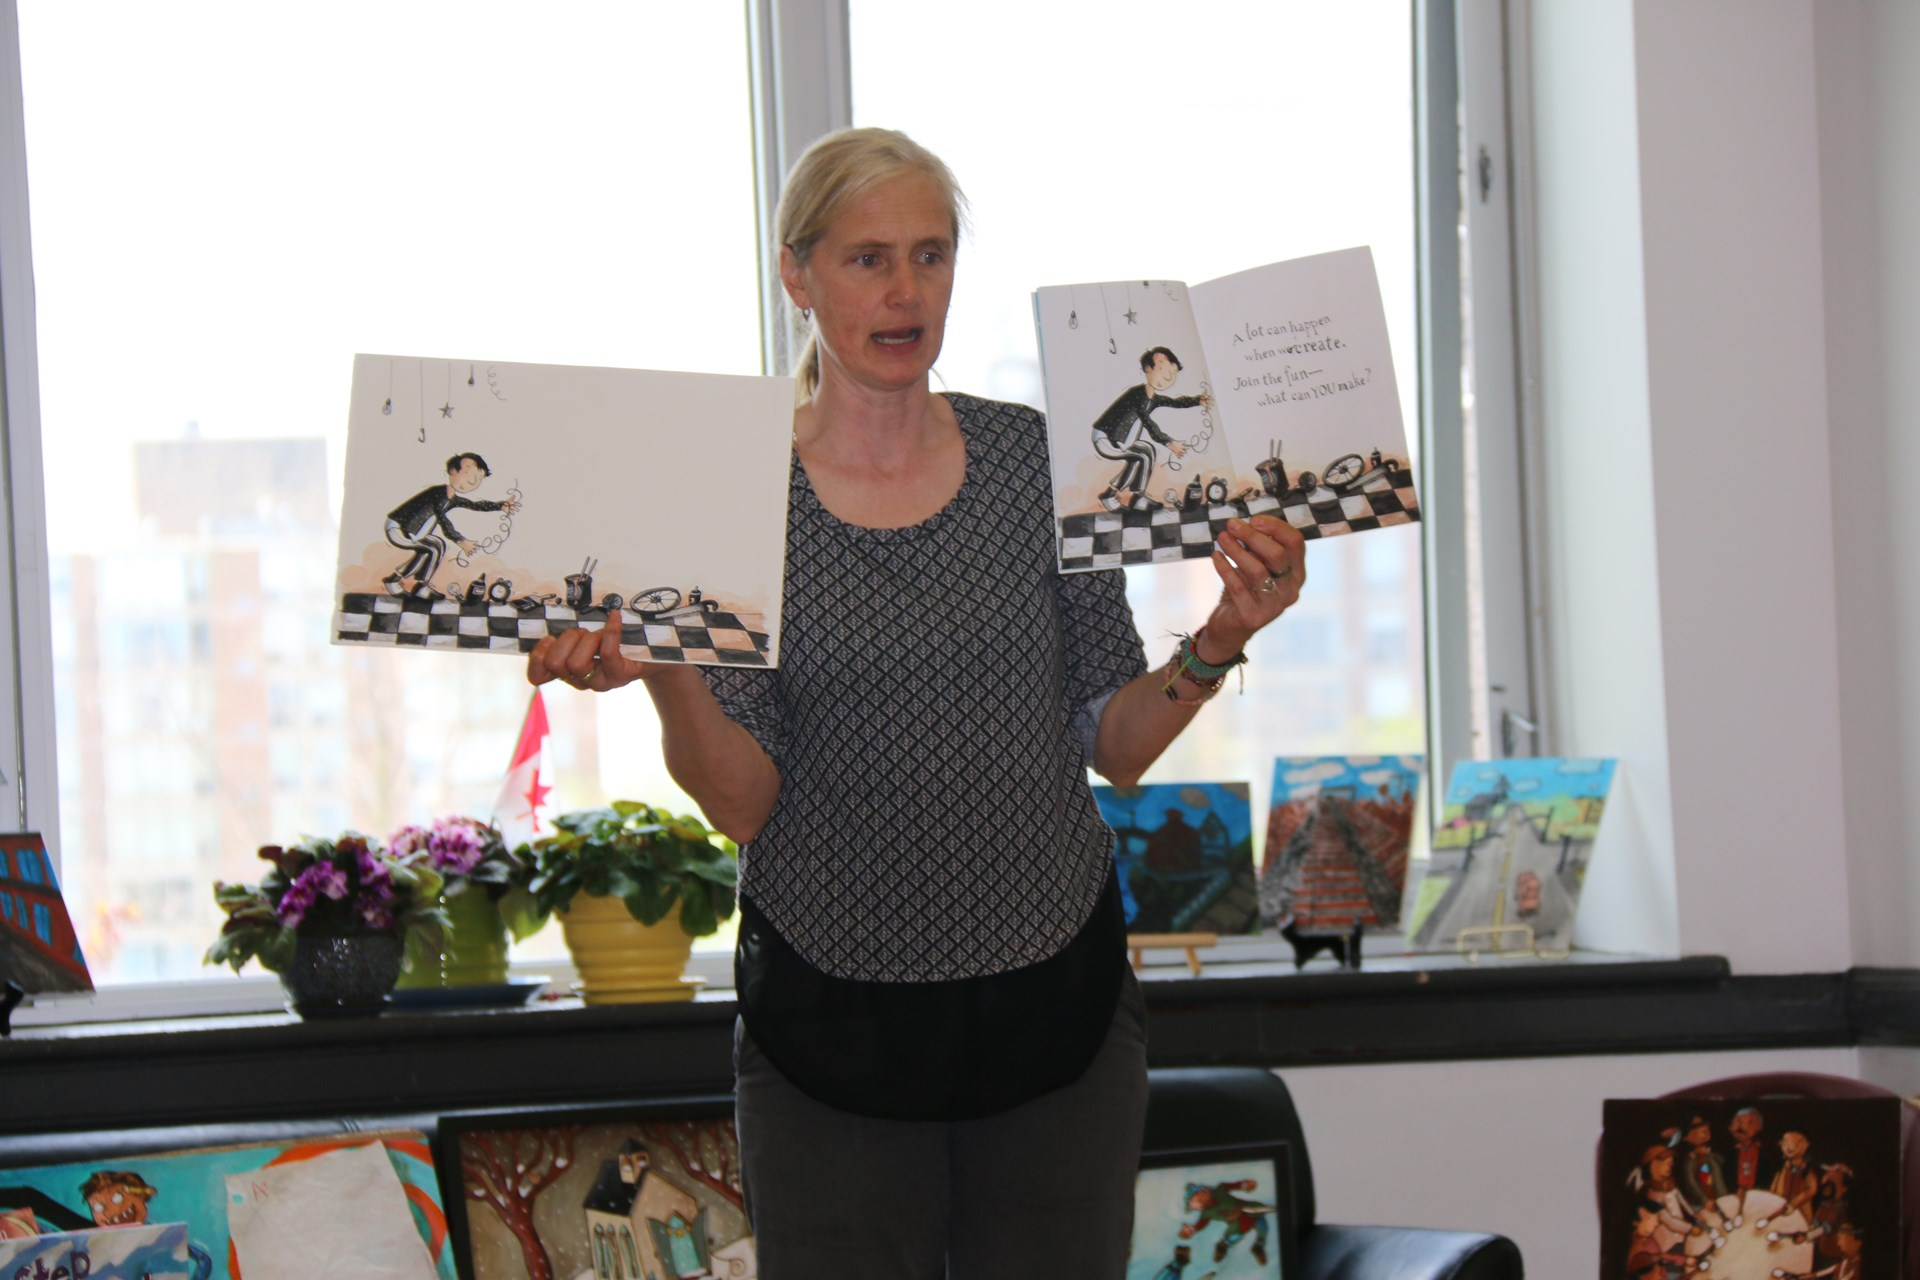 Doretta showing off her books and illustrations